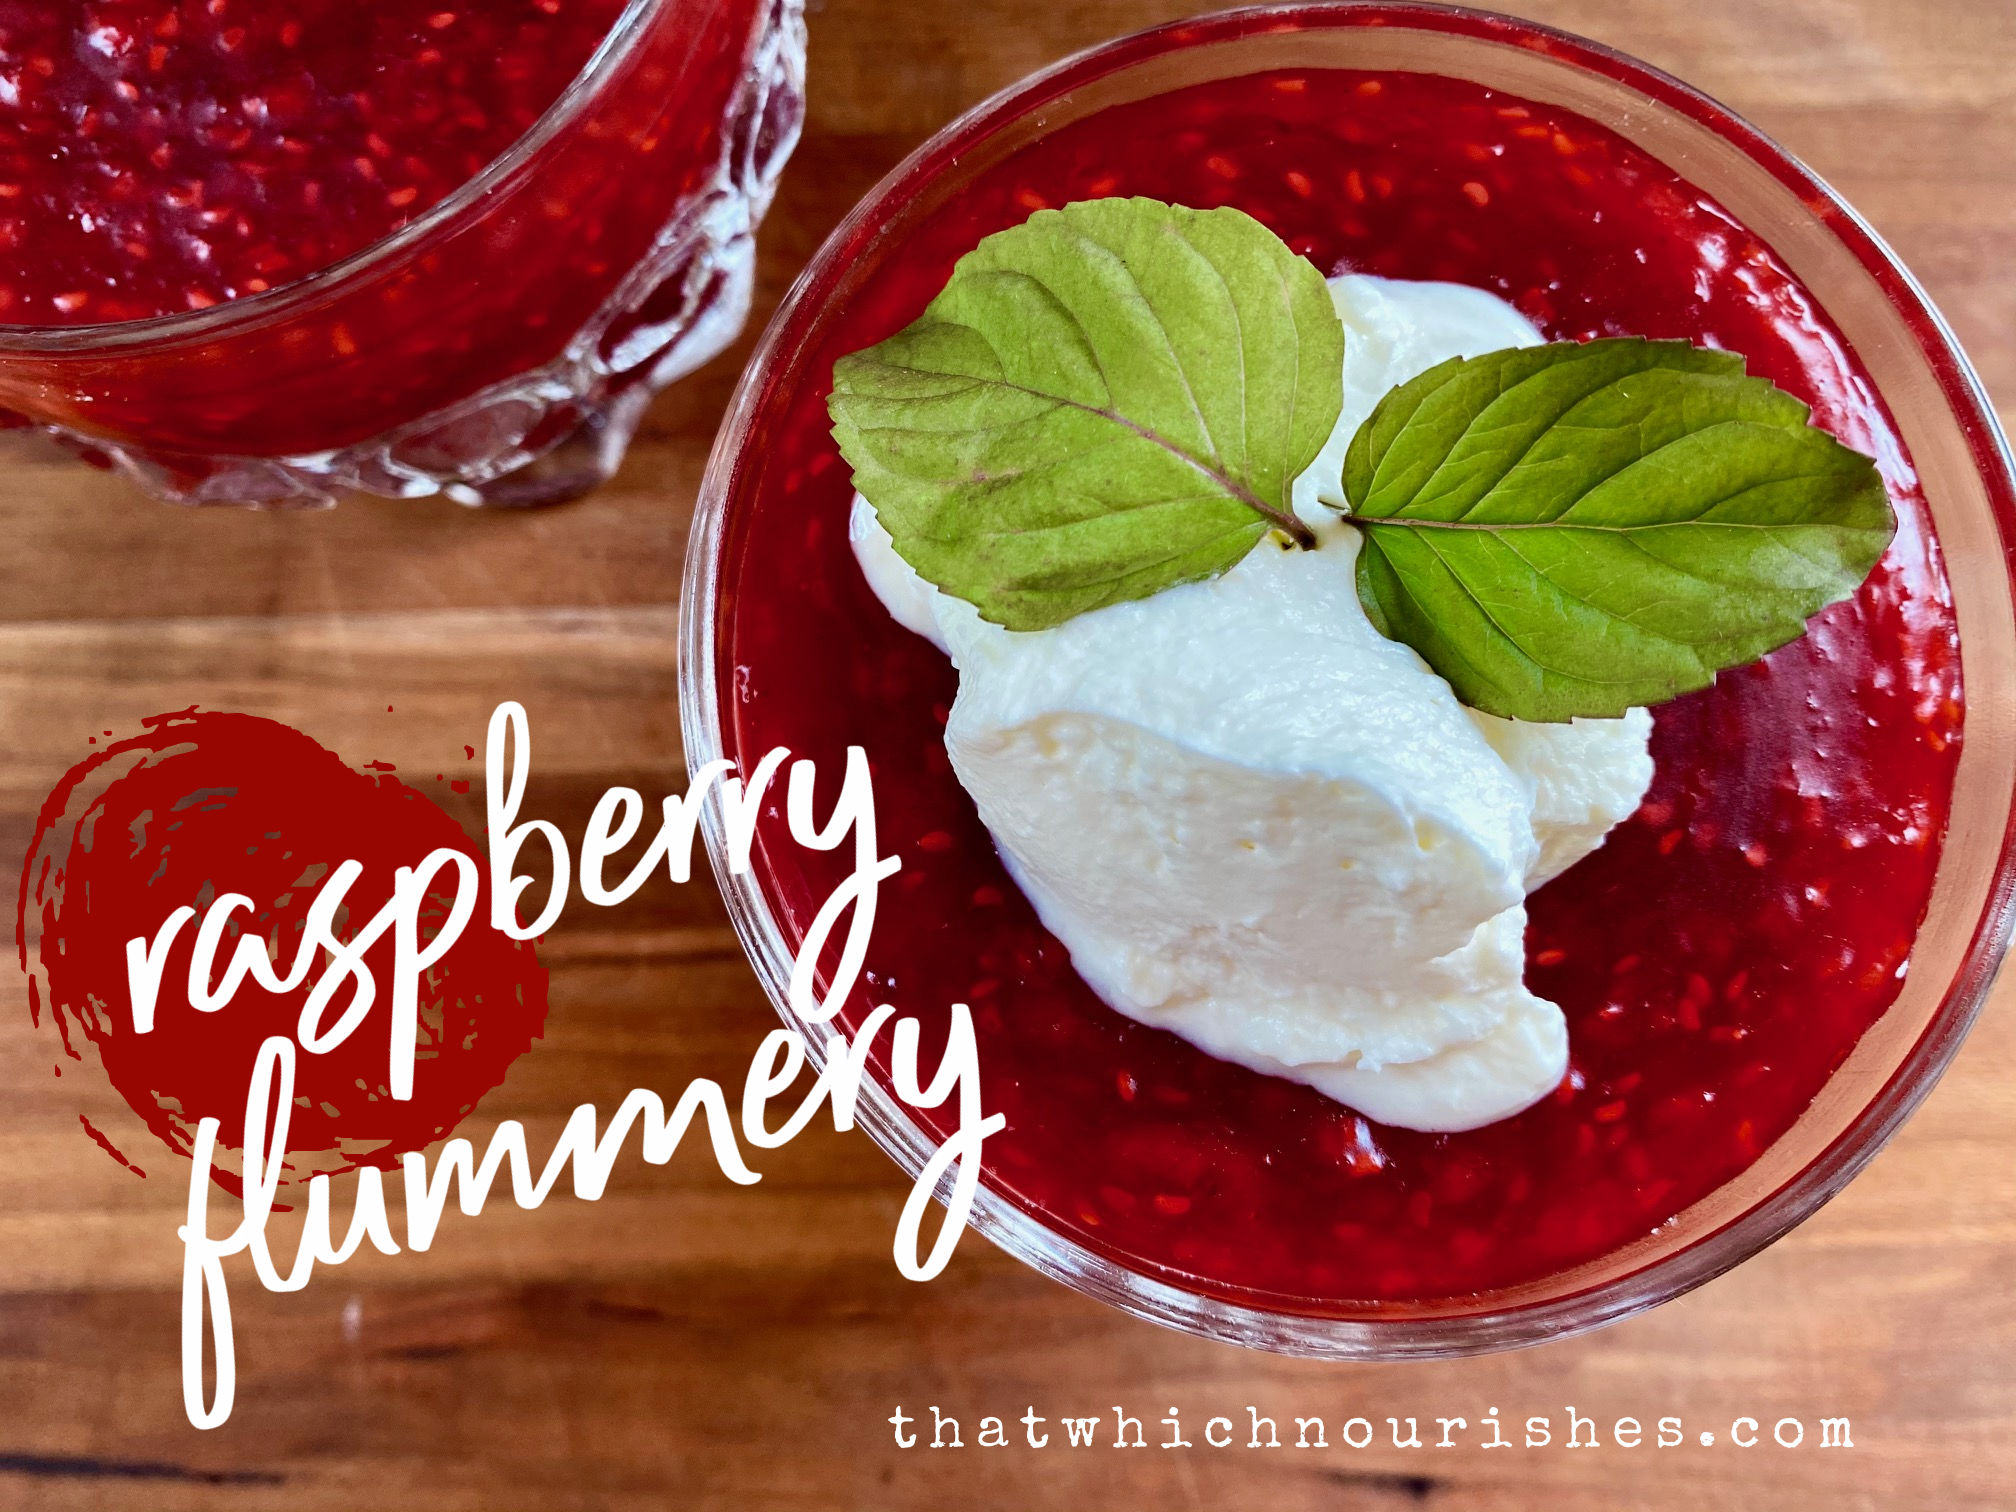 Raspberry Flummery -- A tart, berry pudding that is simply the best (and simplest) dessert that ever happened. | thatwhichnourishes.com